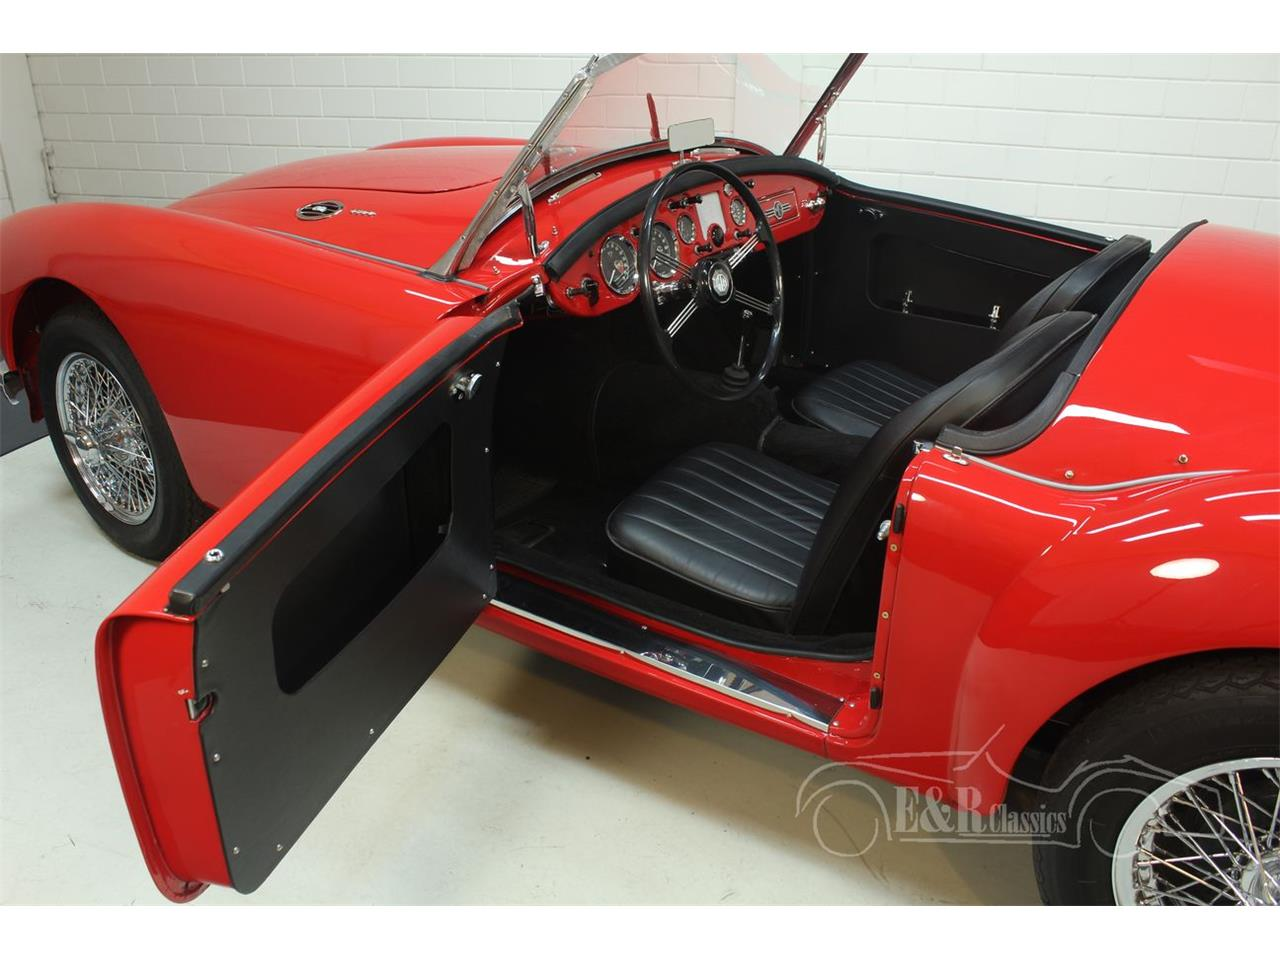 Large Picture of 1959 MGA - $56,500.00 Offered by E & R Classics - PGST